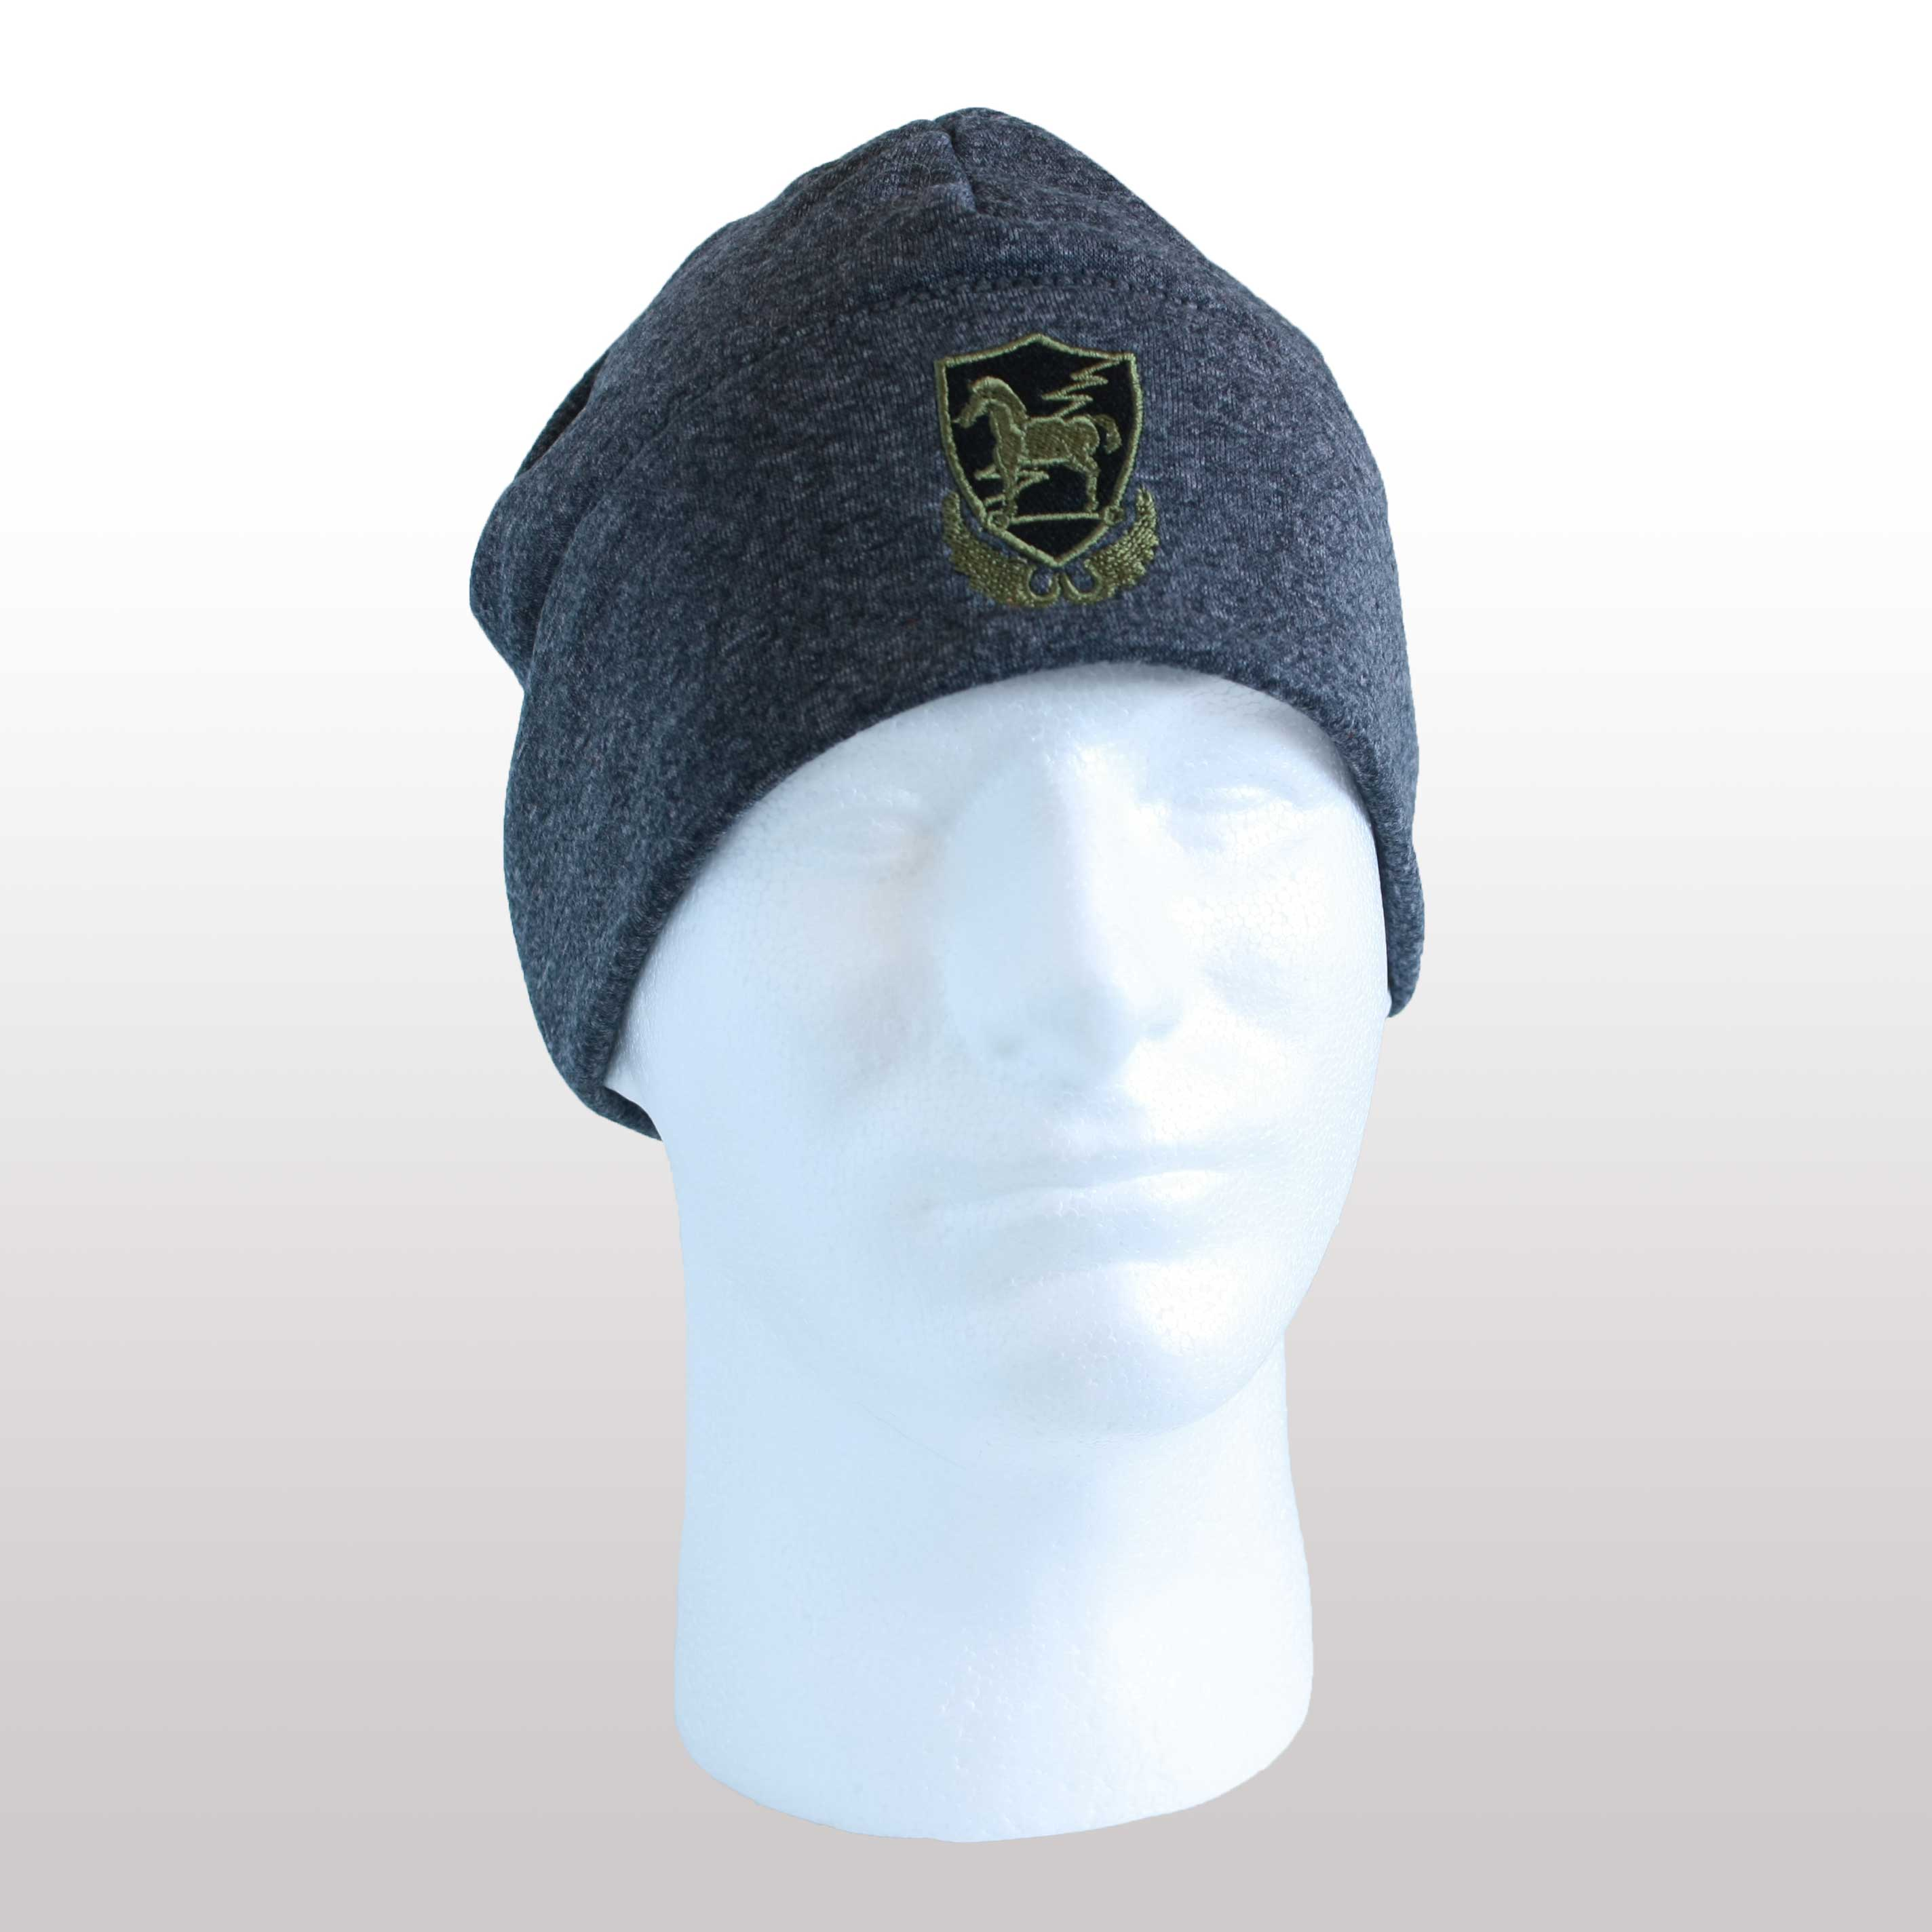 PolarTec Expedition Lightweight Beanie